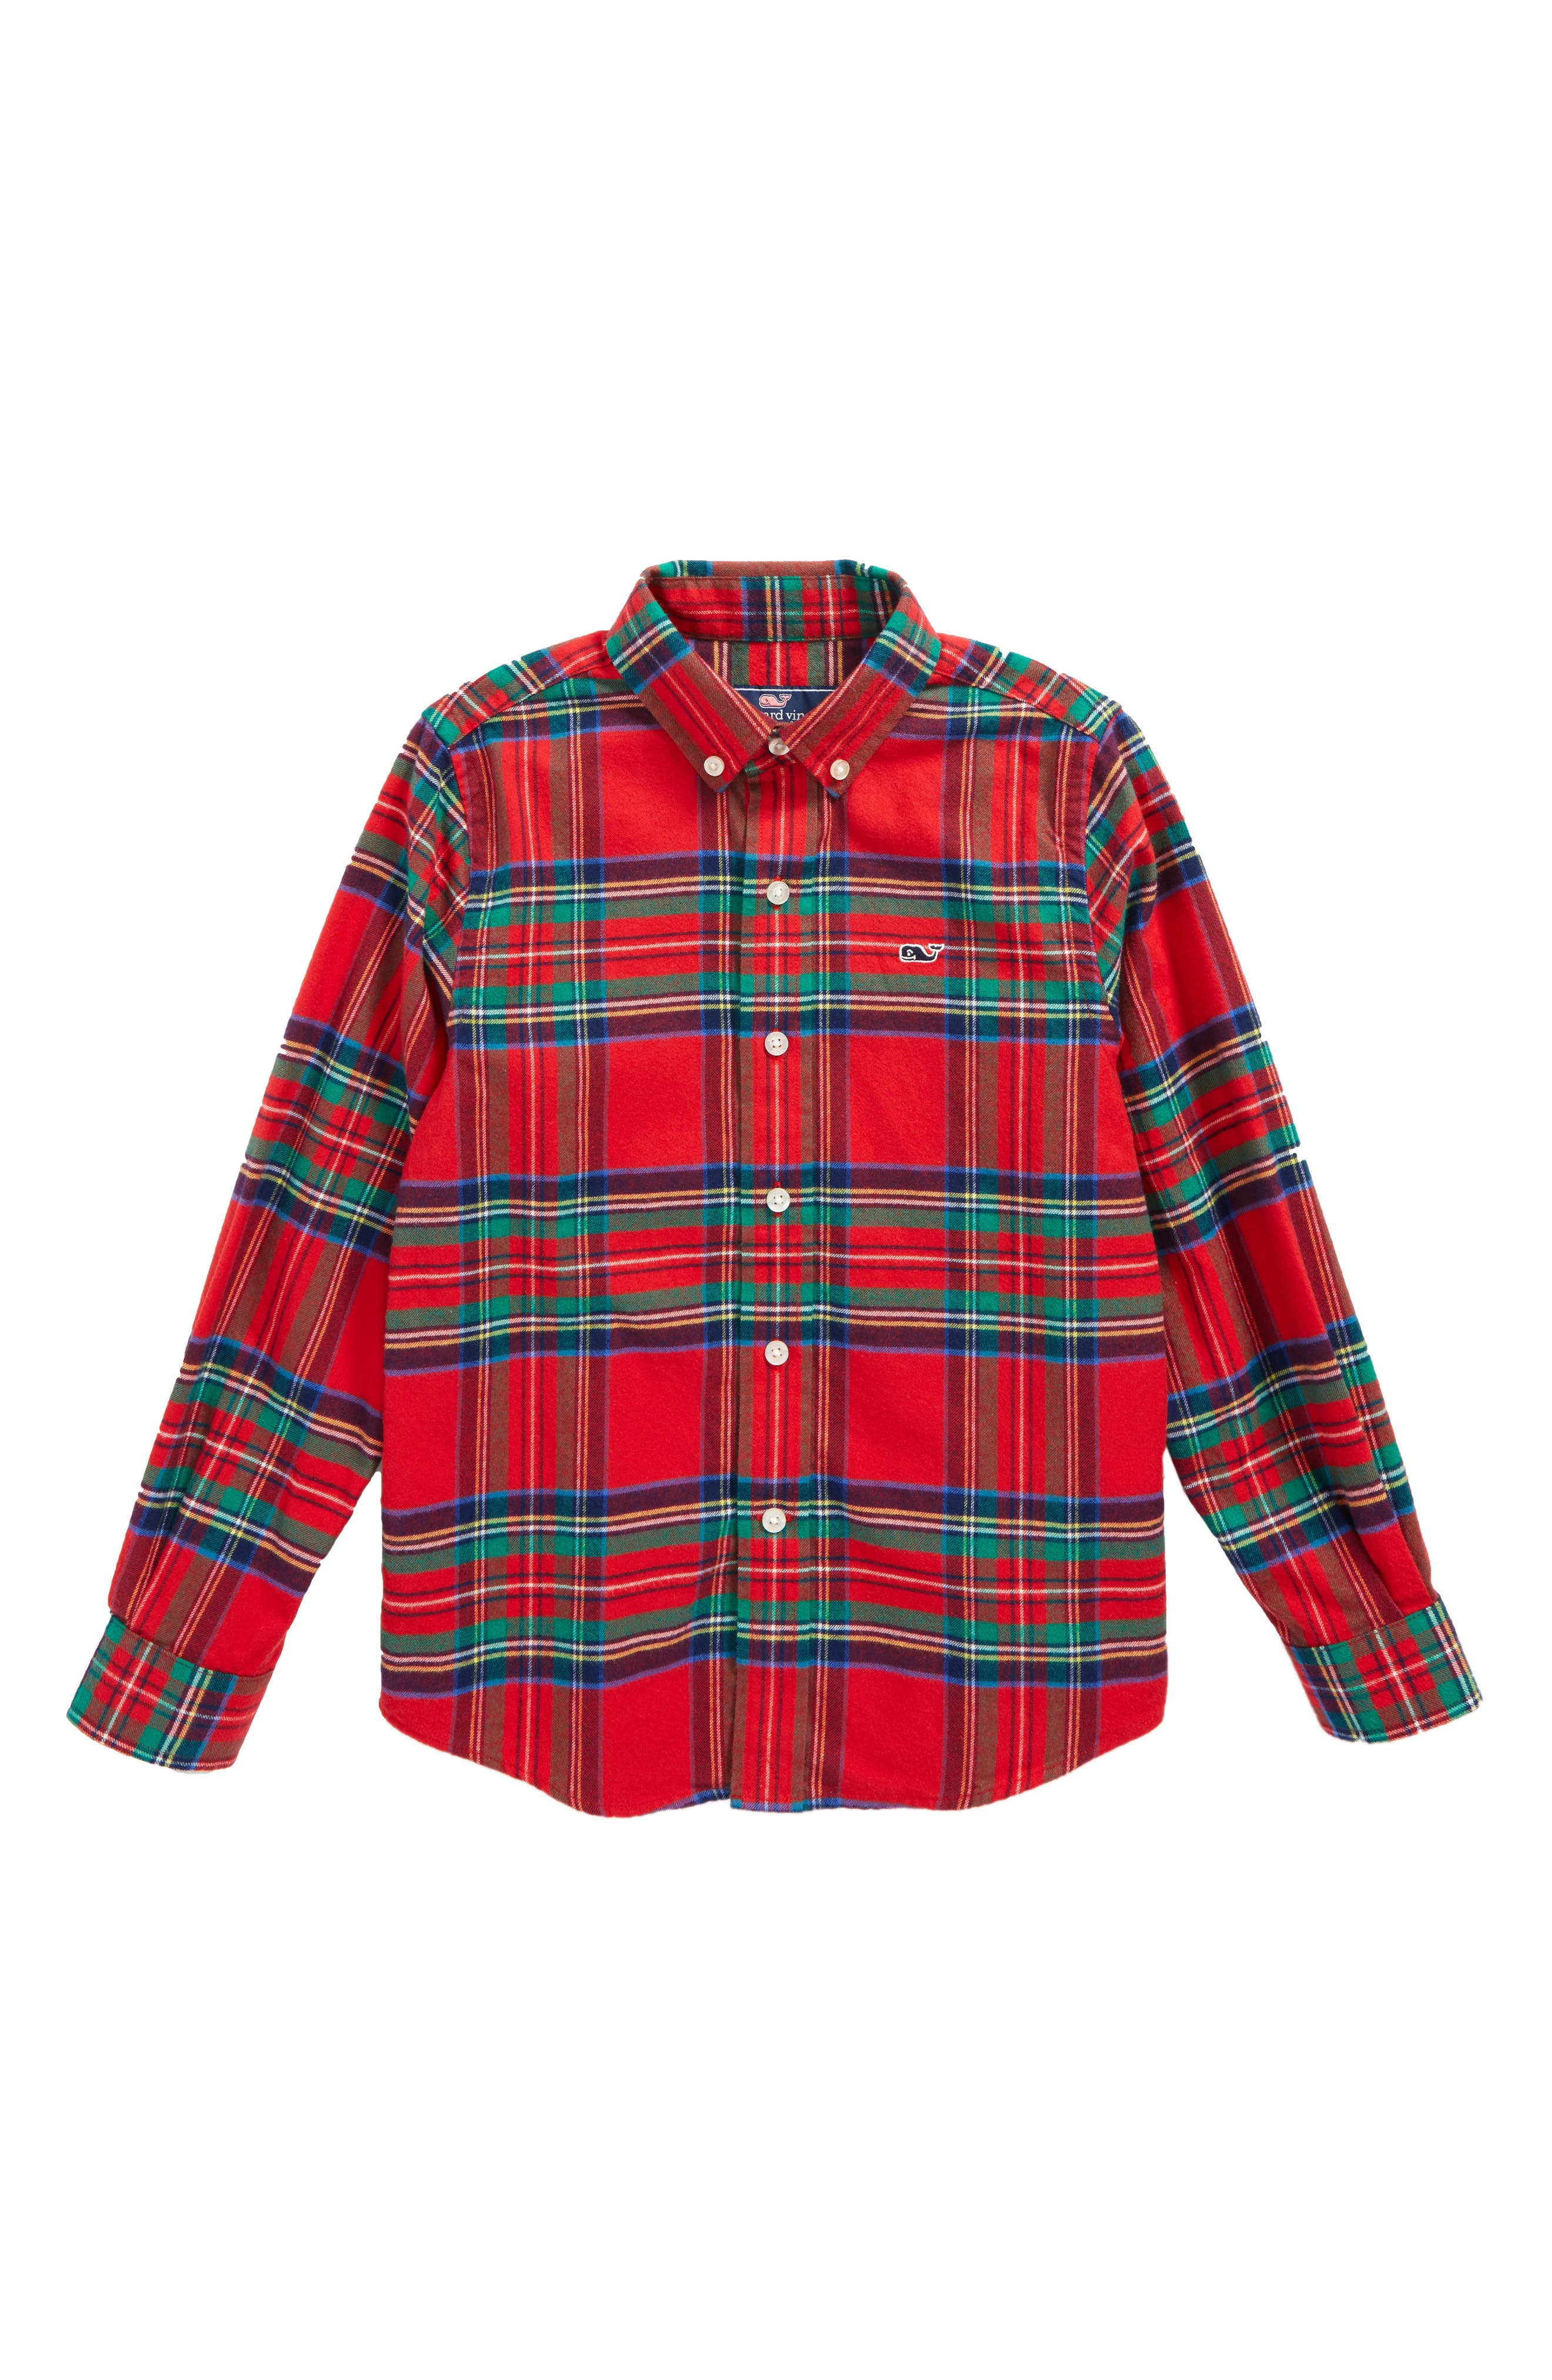 Jolly Plaid Whale Flannel Shirt,                         Main,                         color, Lighthouse Red